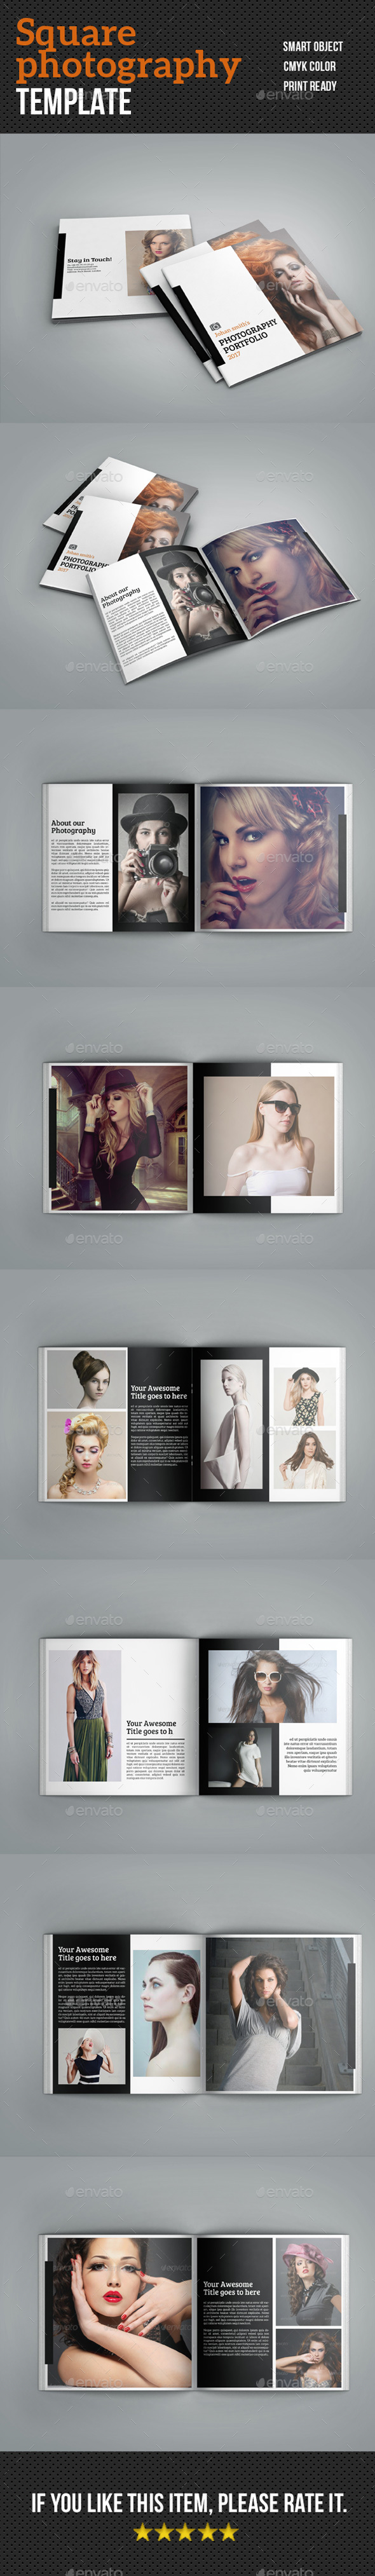 Square Photography Brochure - Corporate Brochures